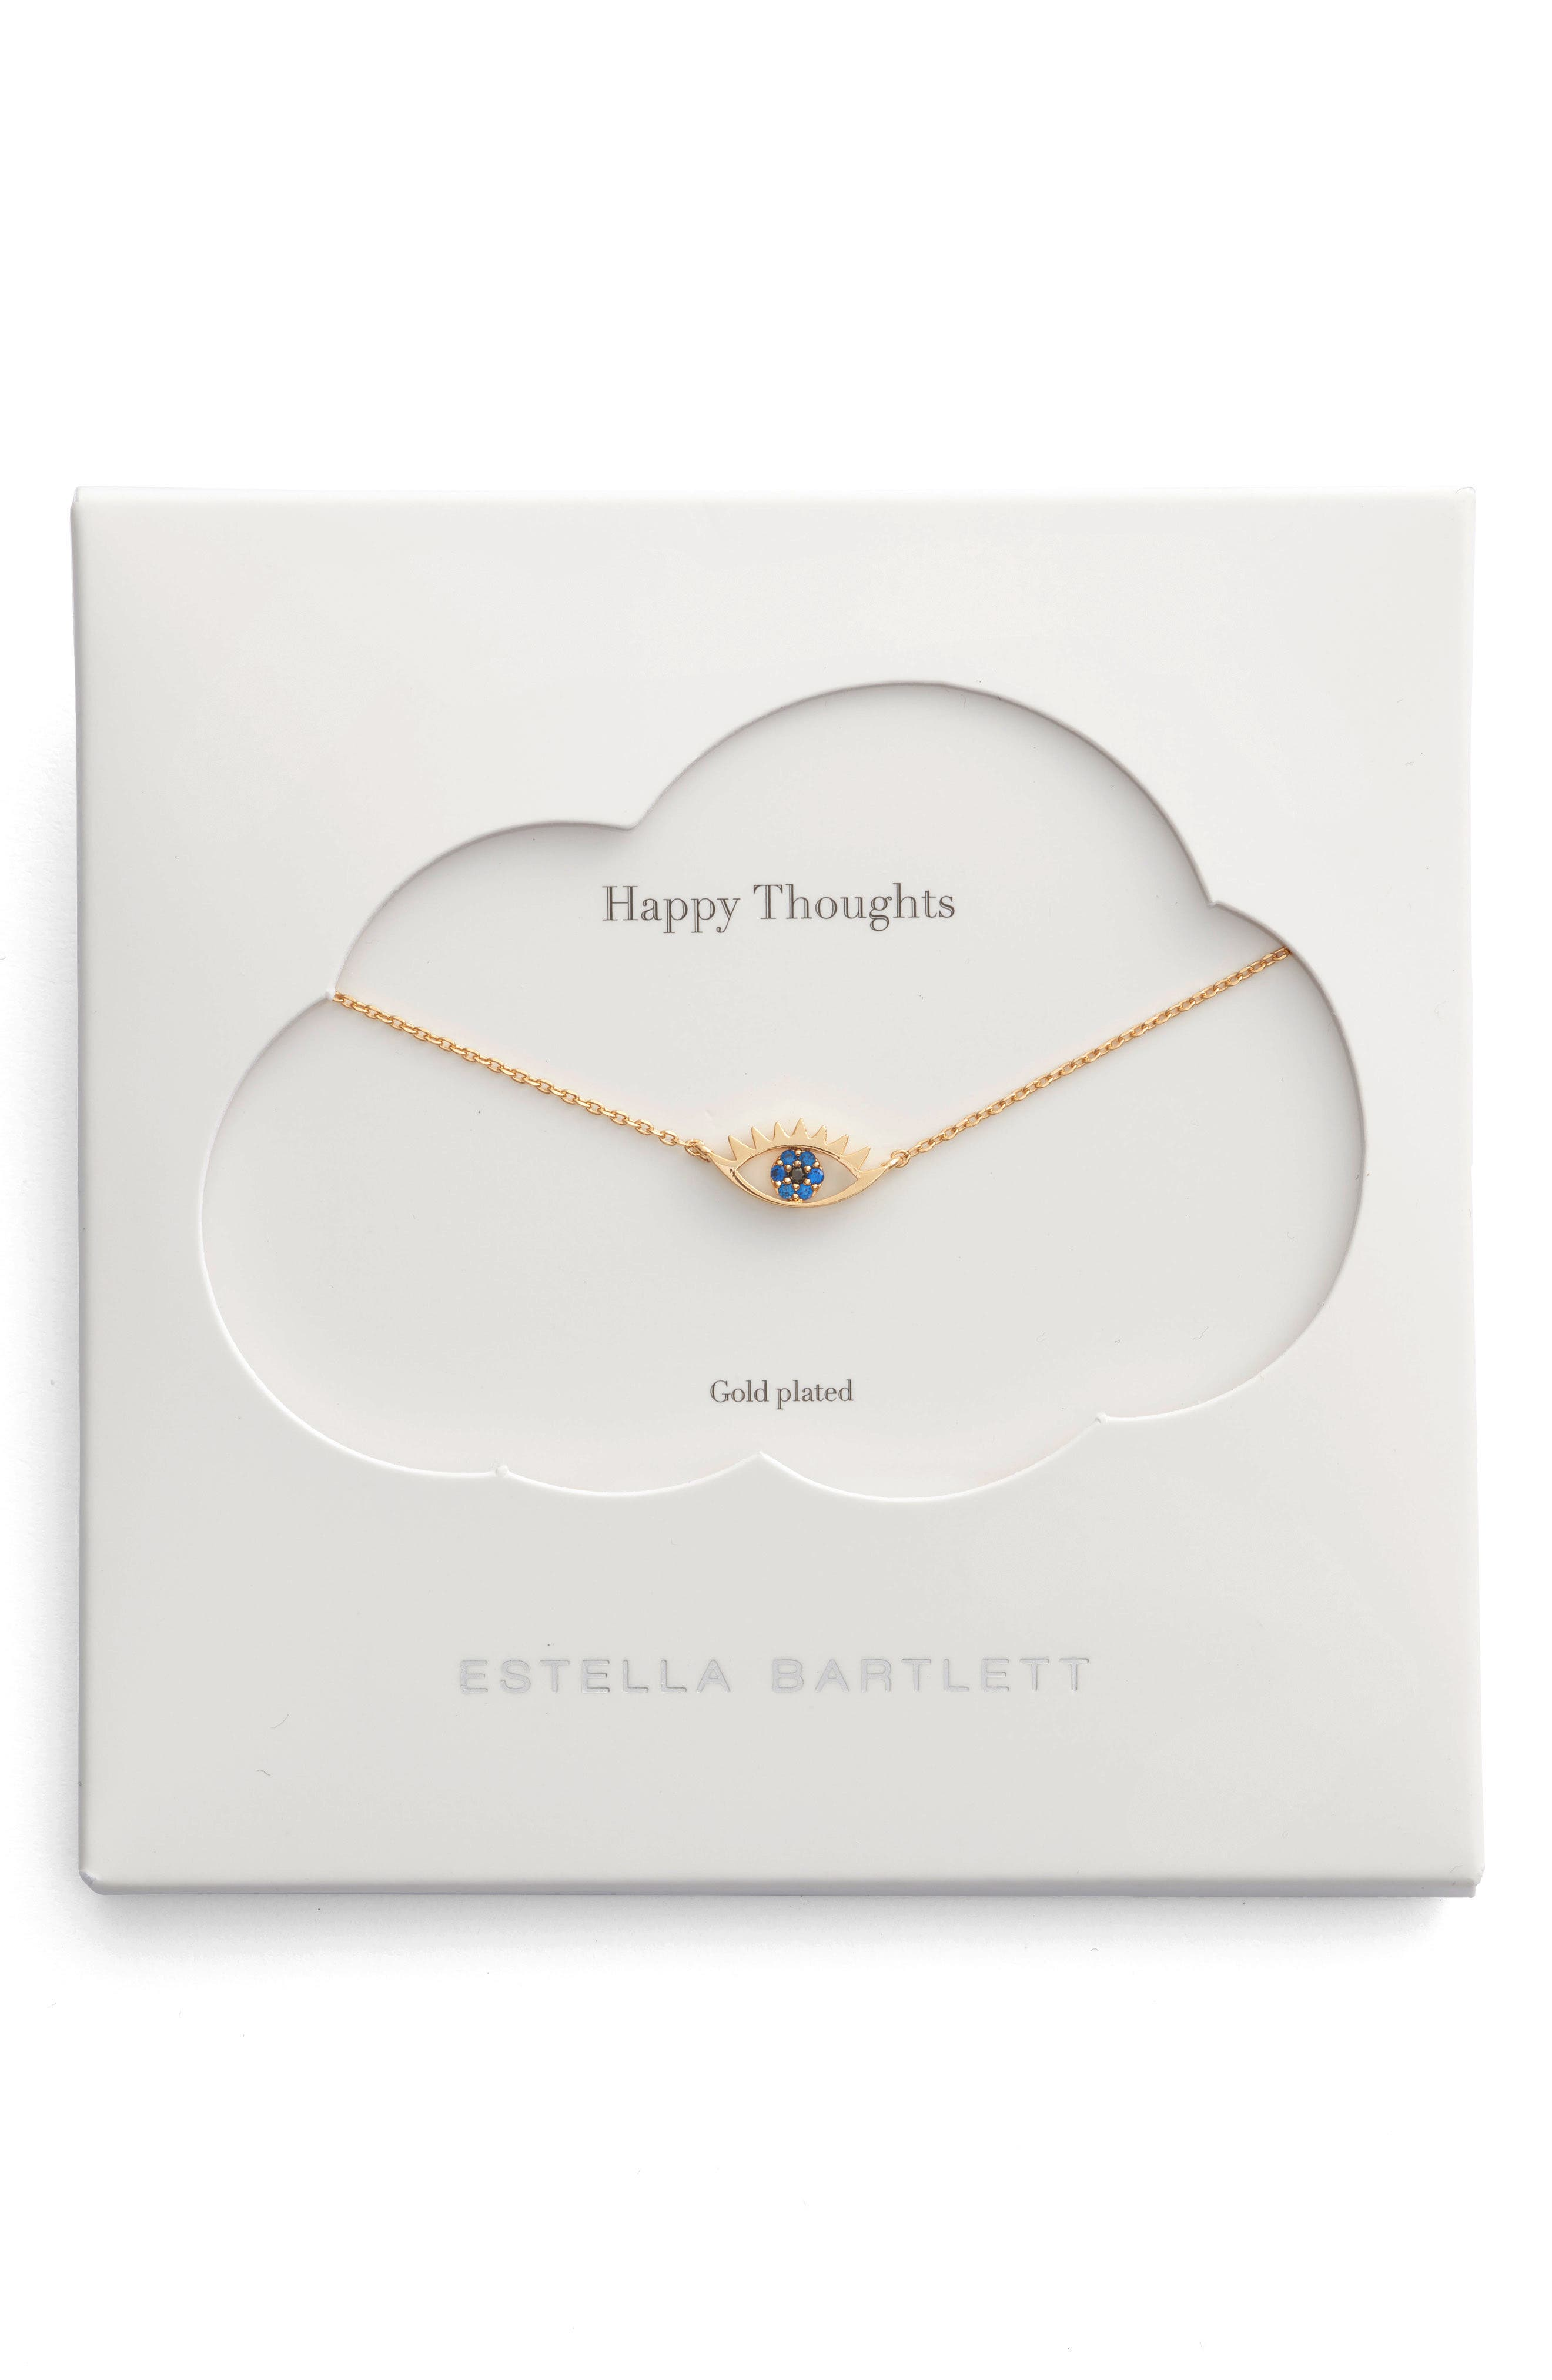 Happy Thoughts Eye Pendant Necklace,                             Main thumbnail 1, color,                             GOLD